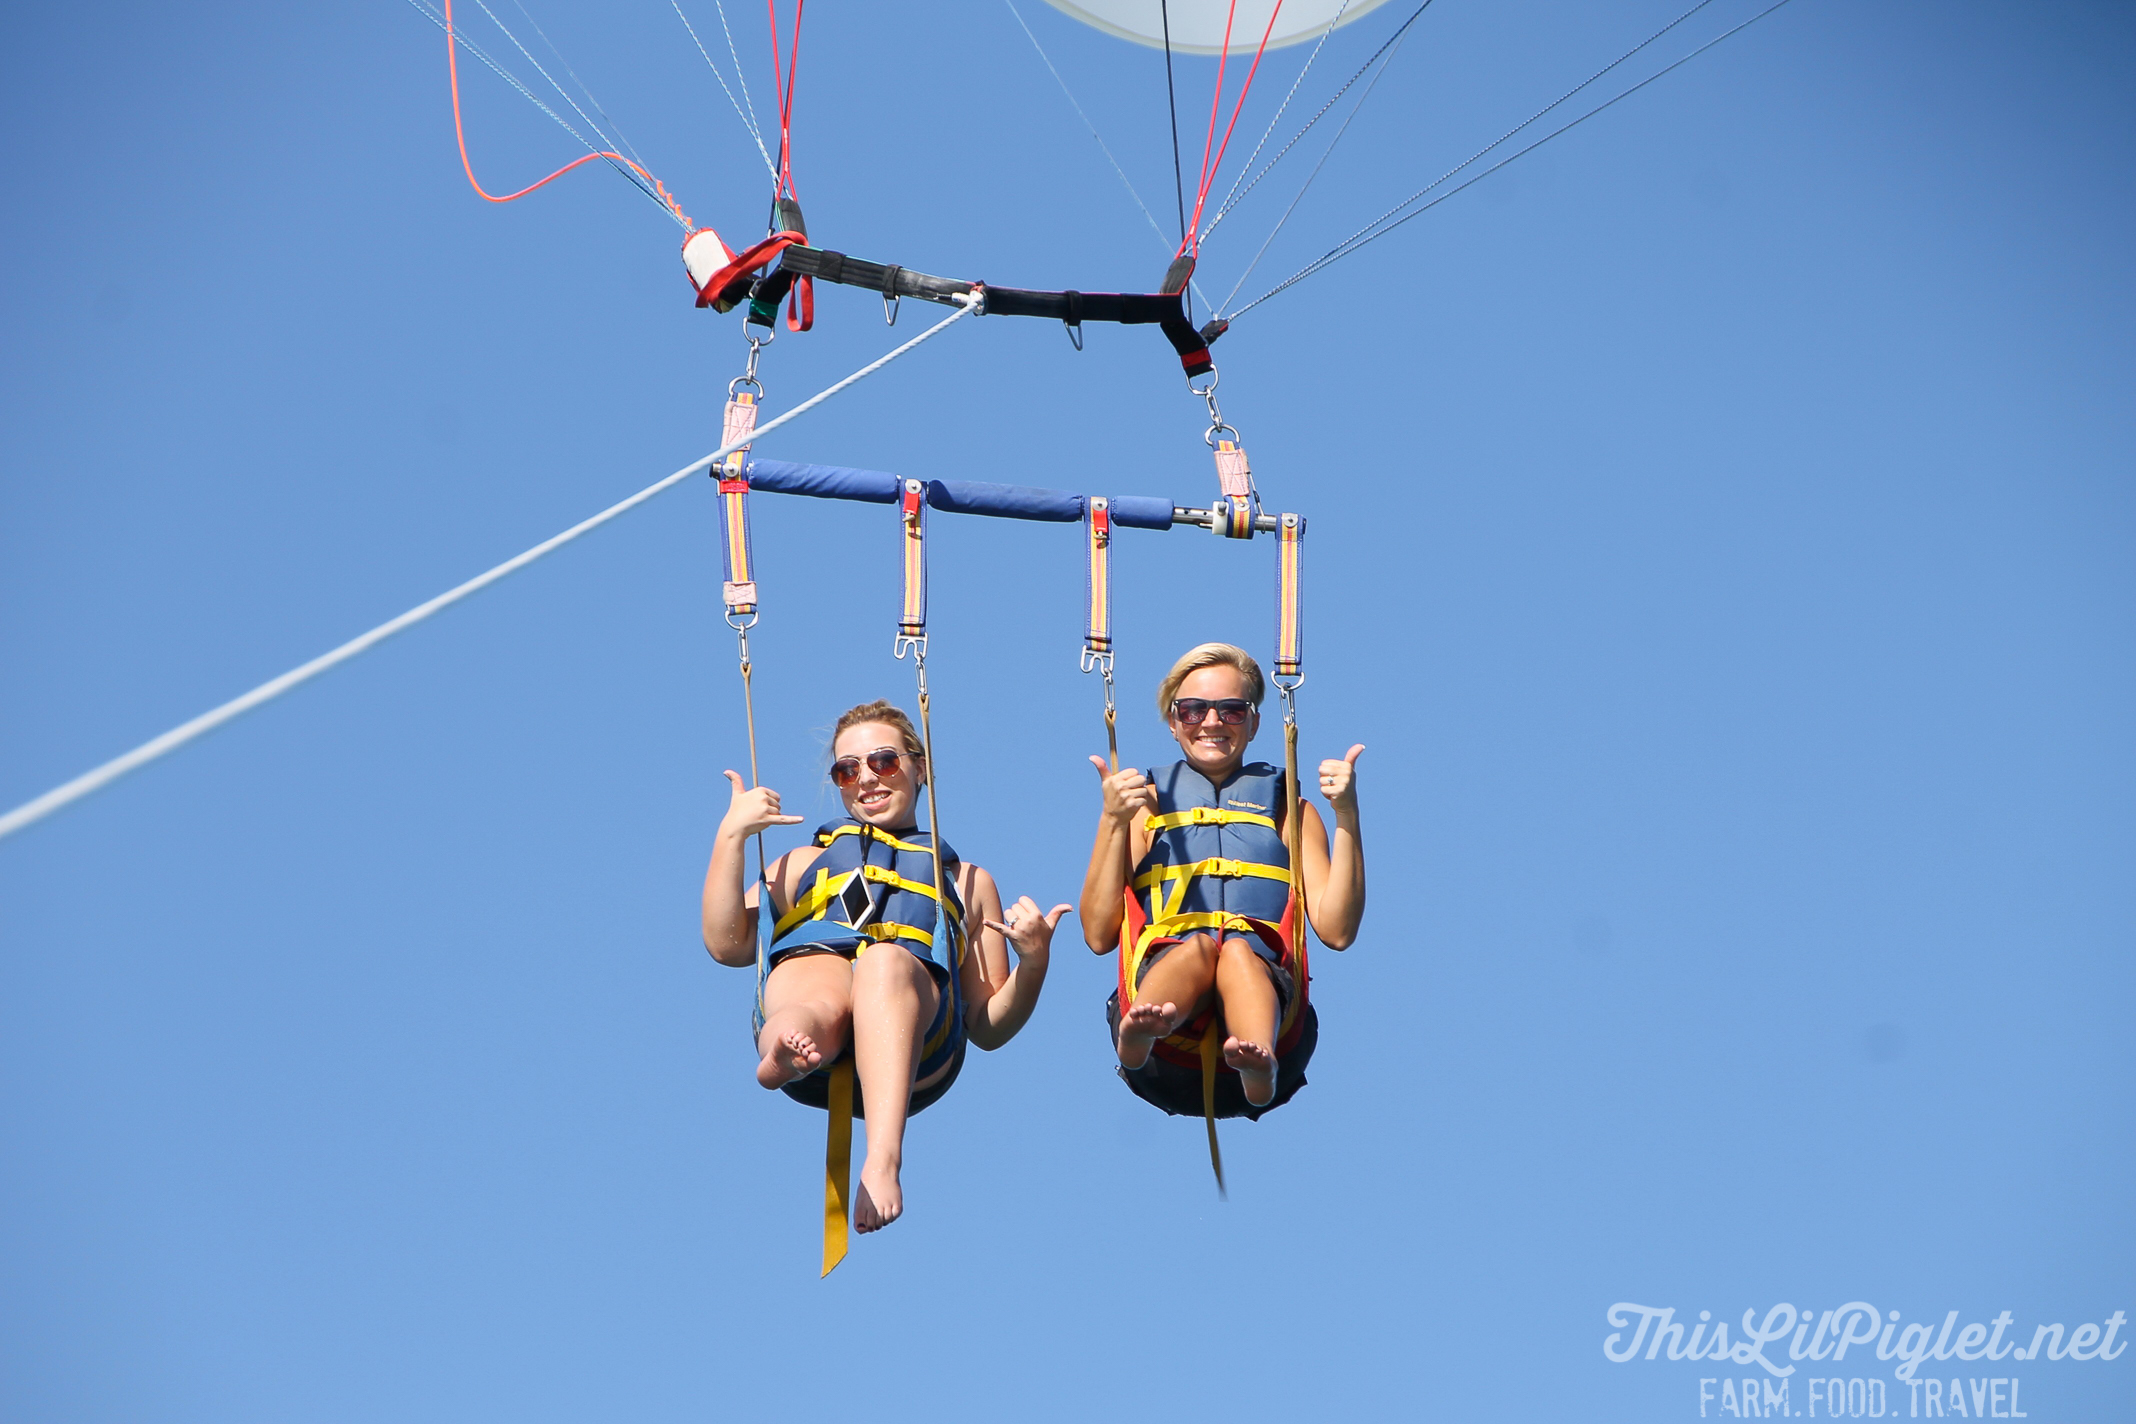 Bucket List Travel Destination: Key West Florida What to Do - Parasailing with Fury Adventures // thislilpiglet.net